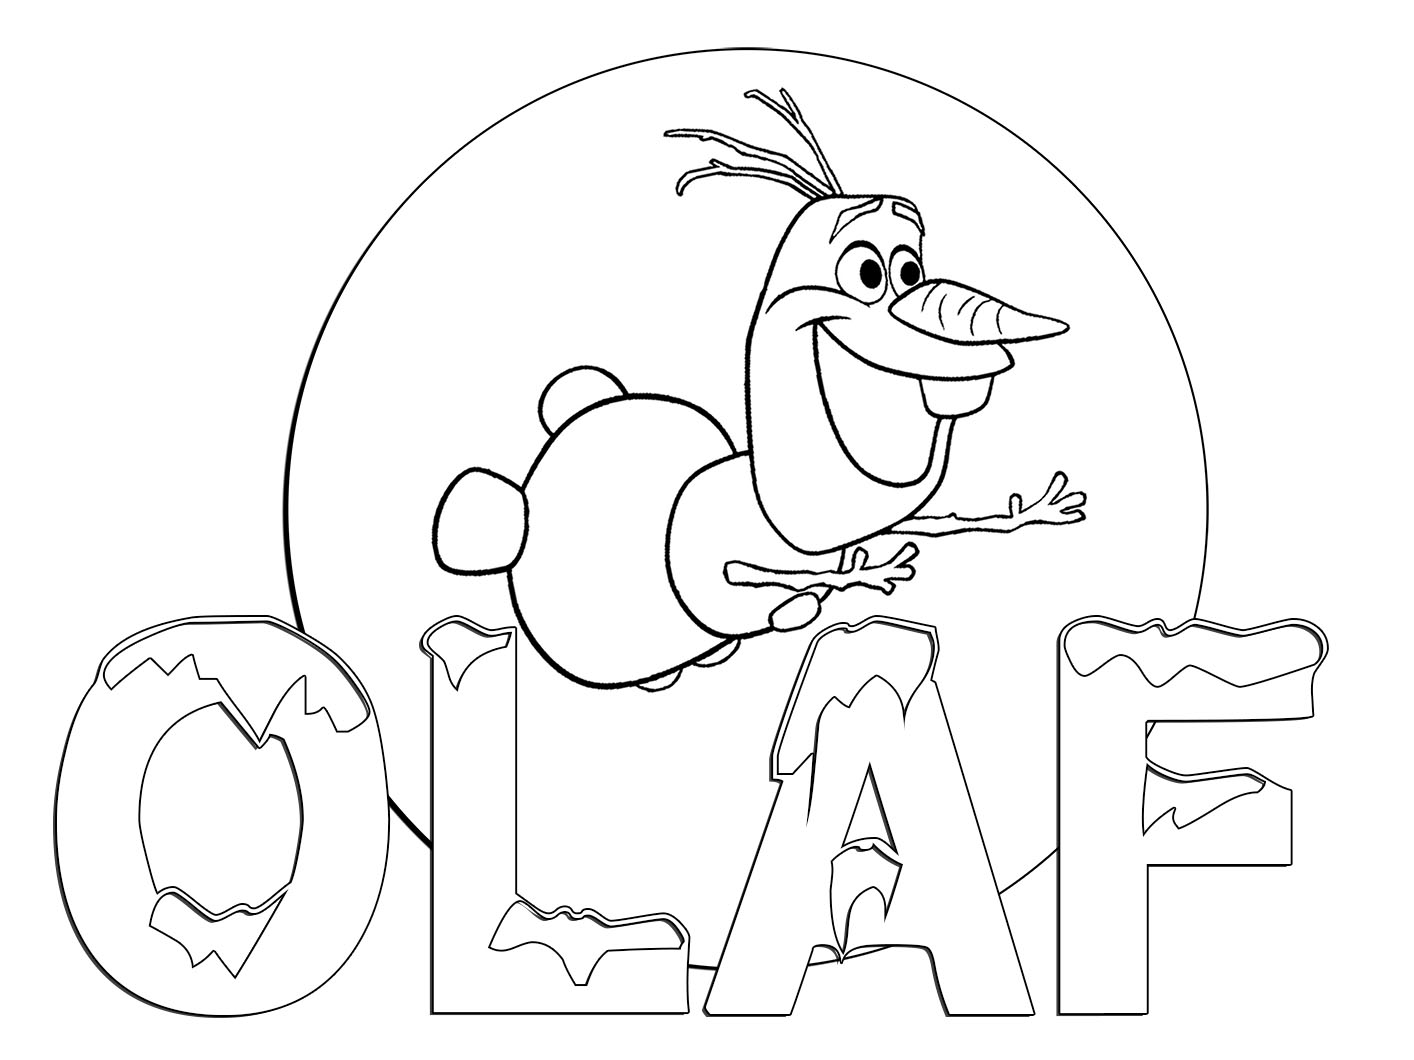 coloring pages online to color - photo#5